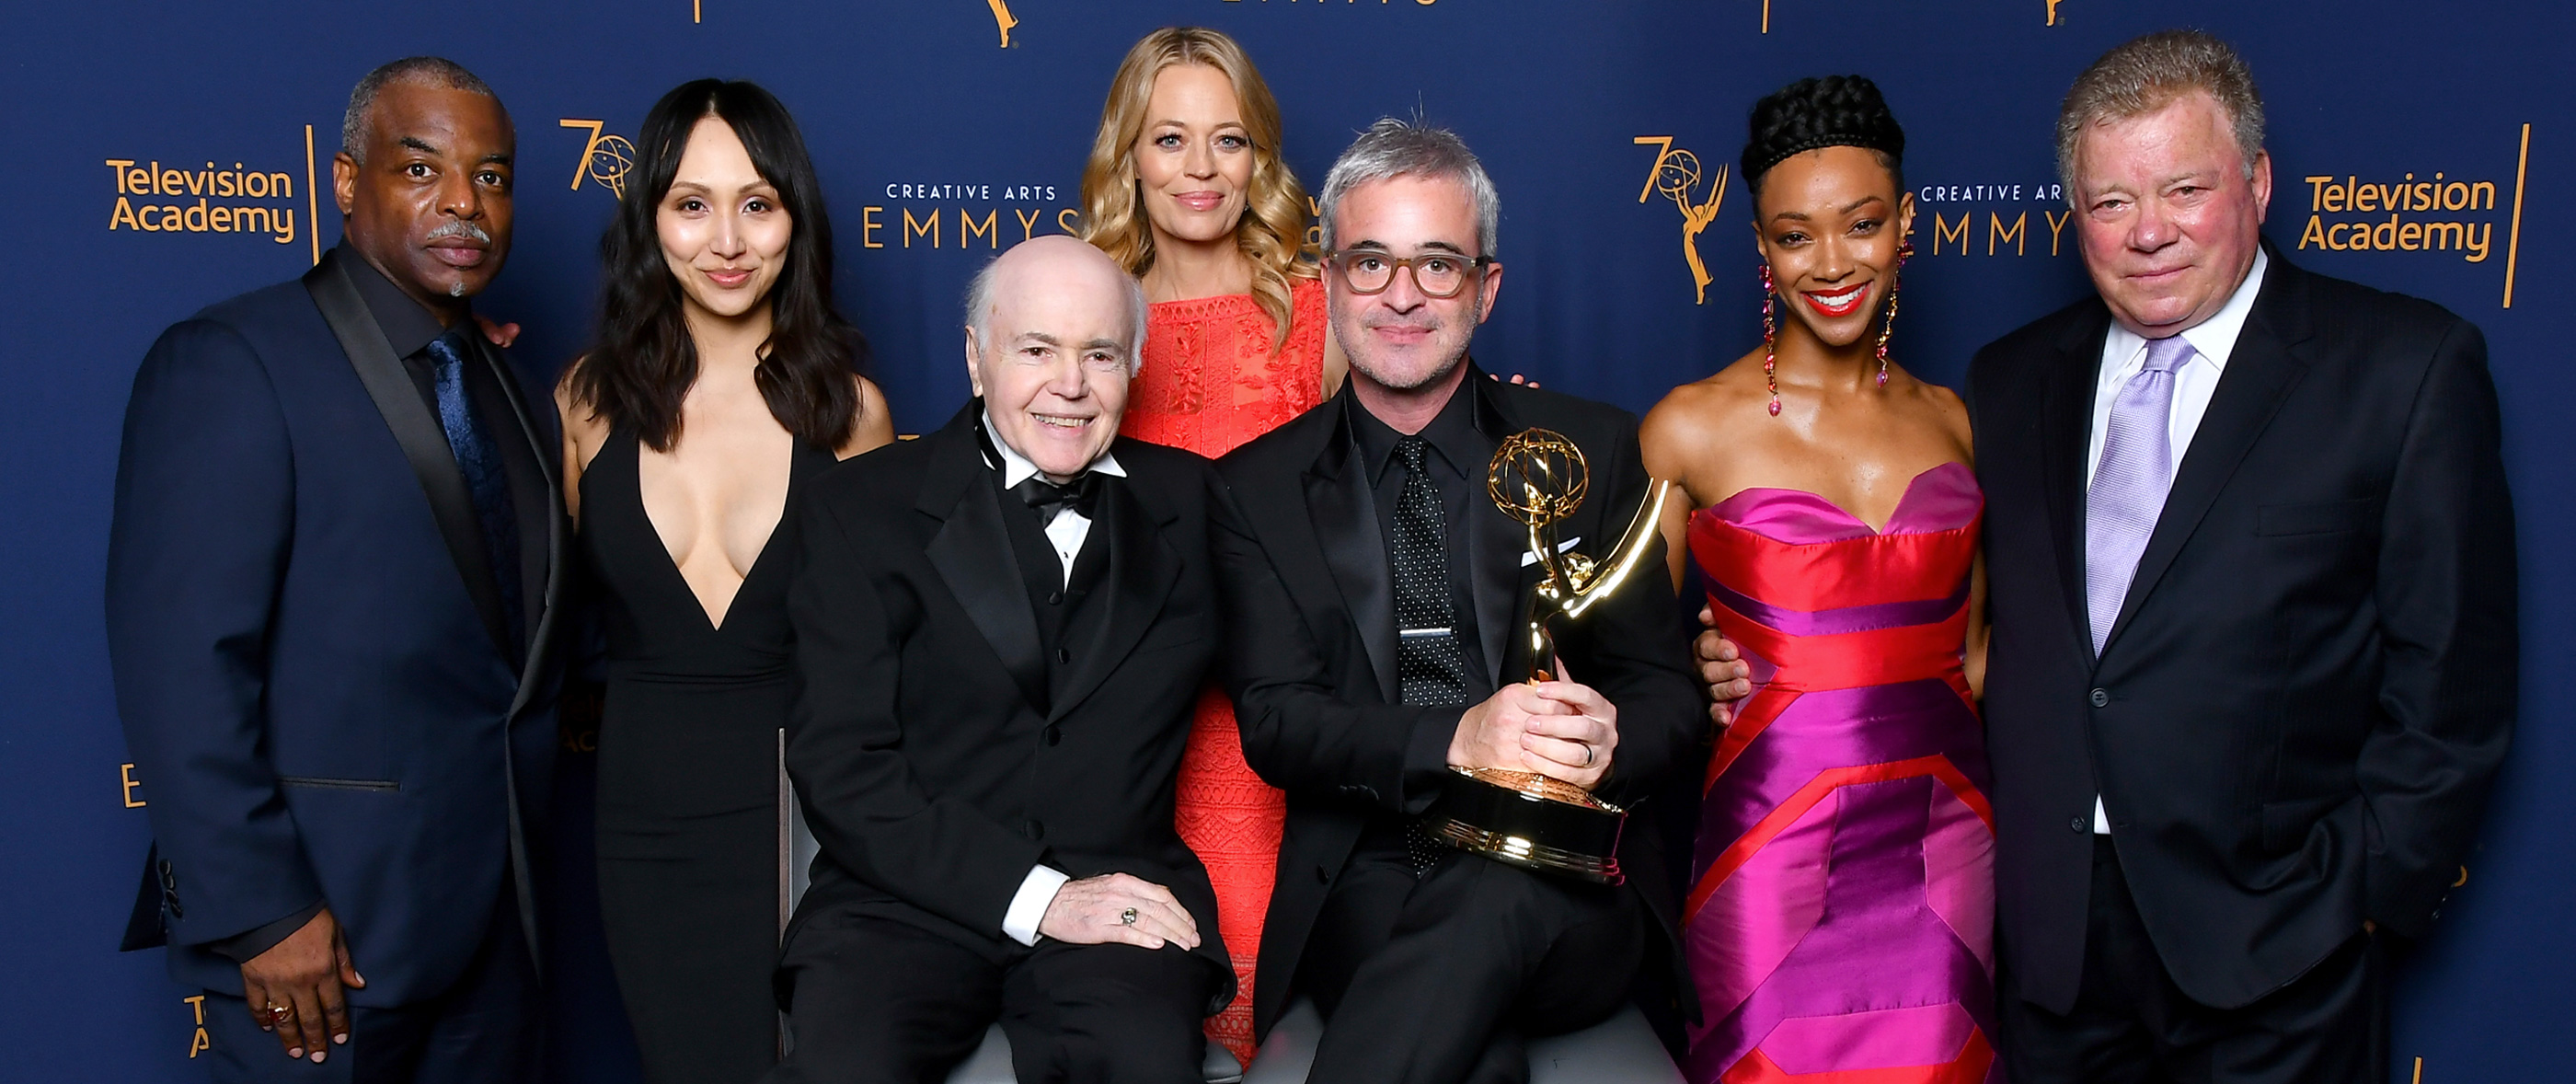 watch-creative-arts-emmy-award-video-honoring-trek.jpg